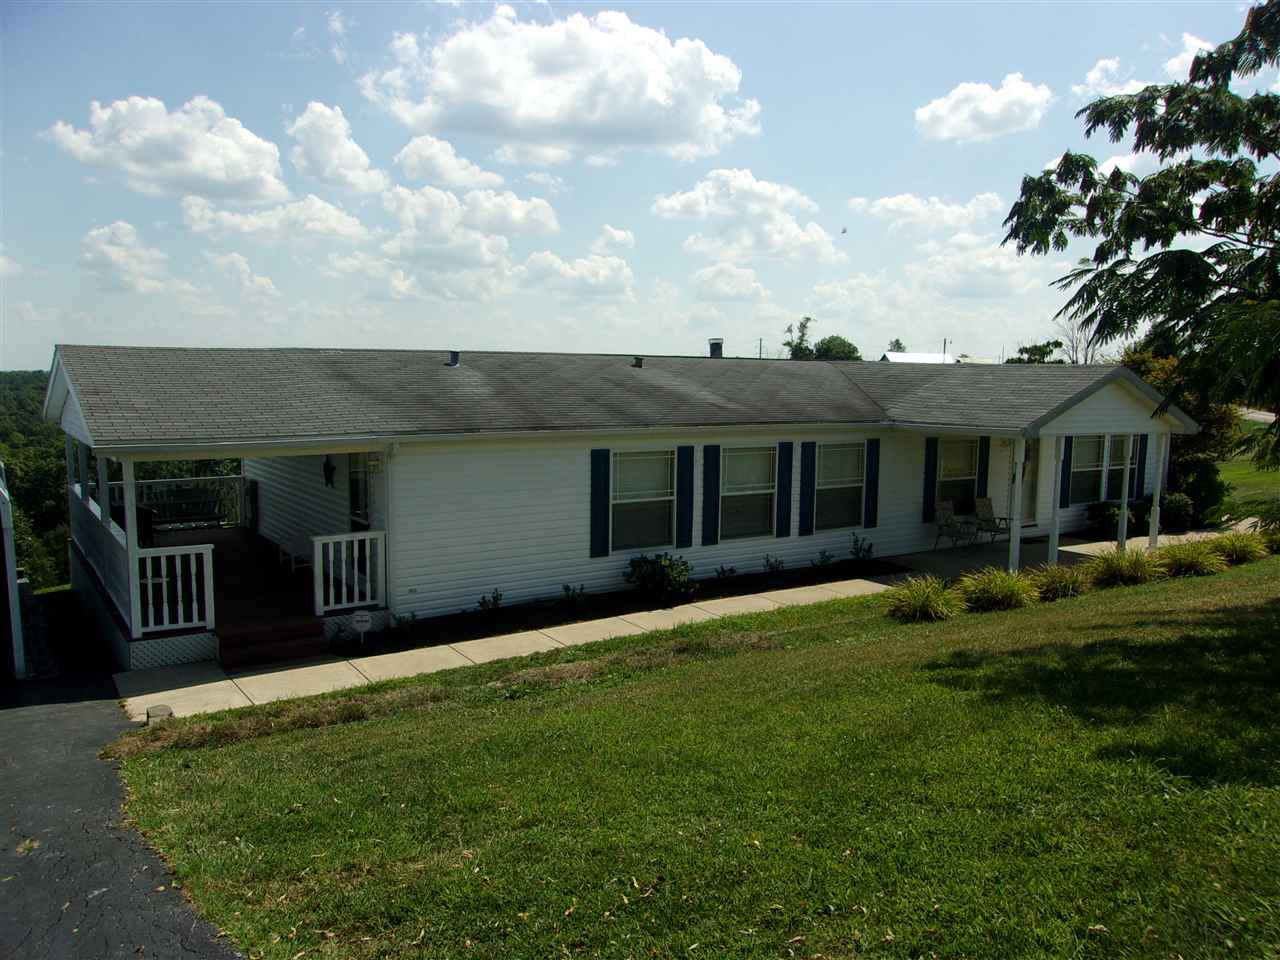 Photo 2 for 4515 Highway 22 W Falmouth, KY 41040